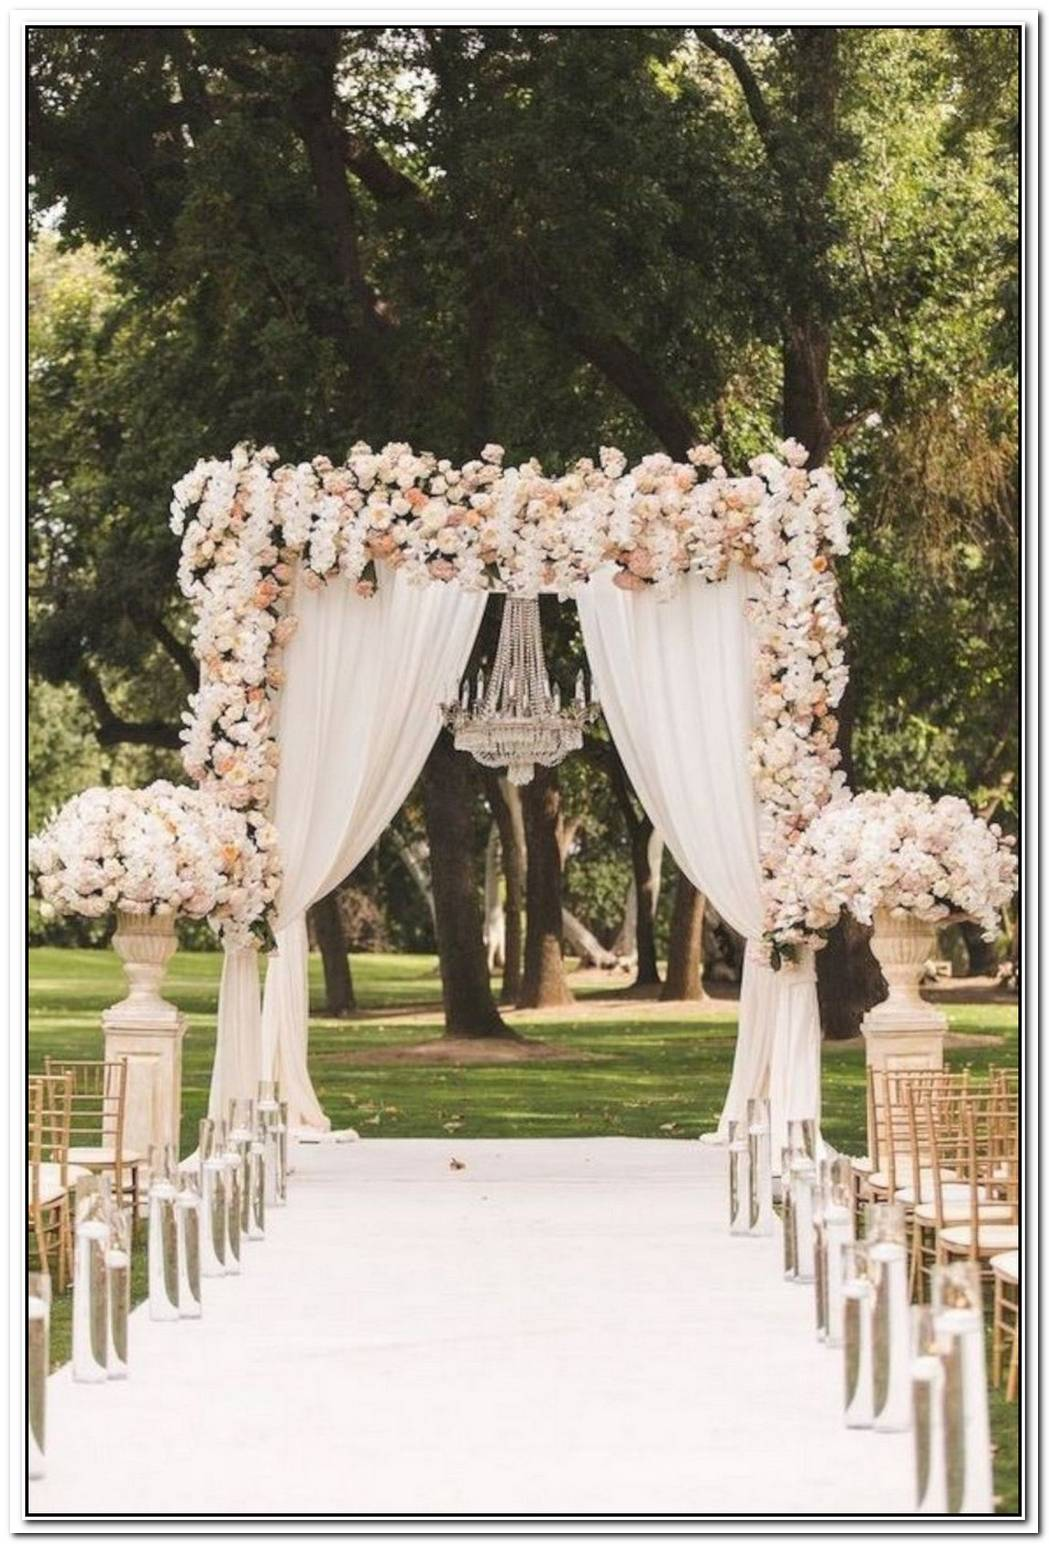 10 Original Altar Design Ideas For Outdoor Weddings